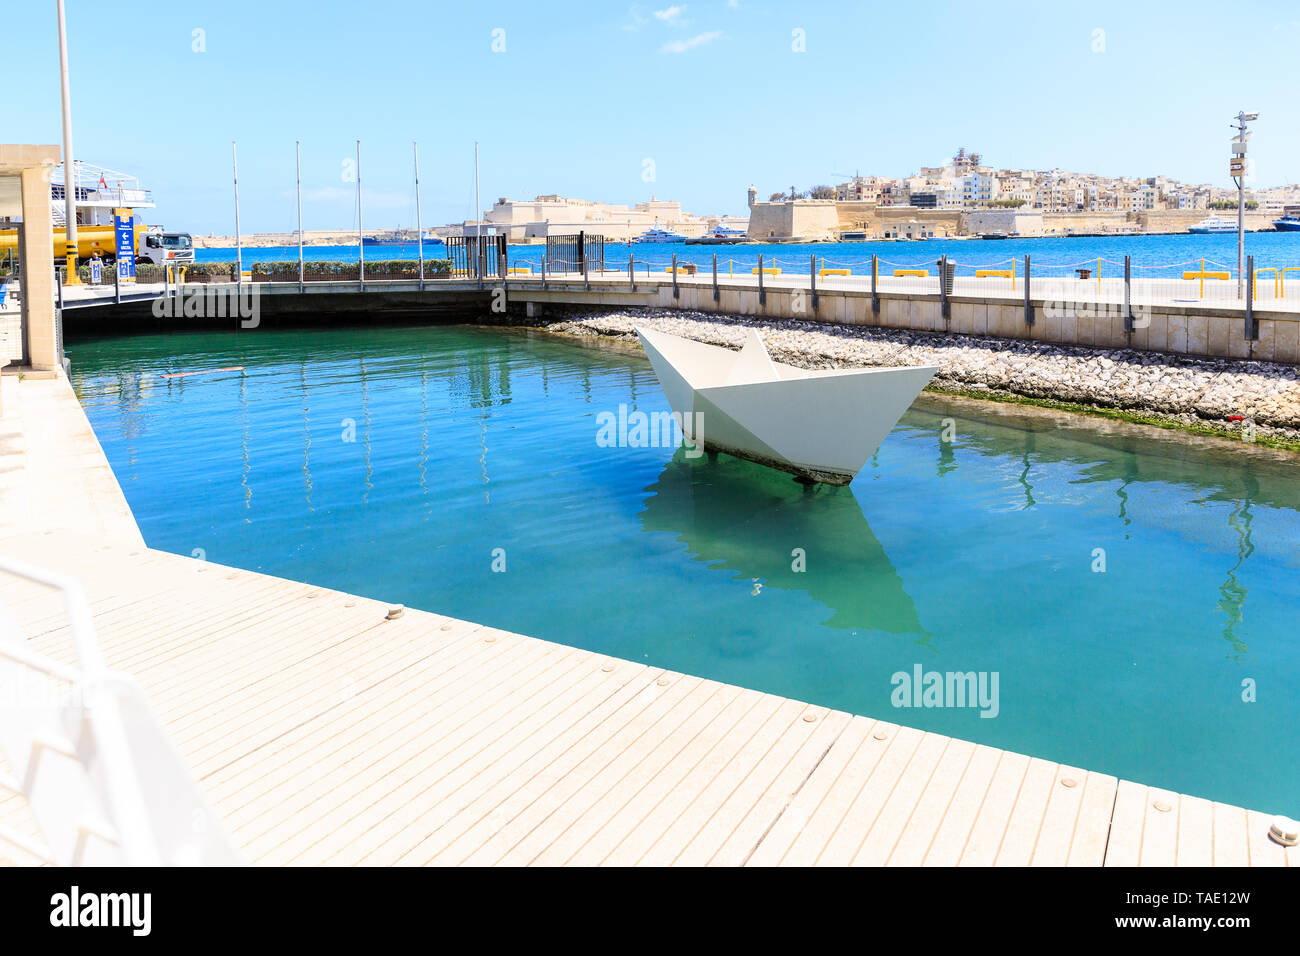 HUGE PAPER SHIP in the Valletta Waterfront, Saint Angel fort - Stock Image